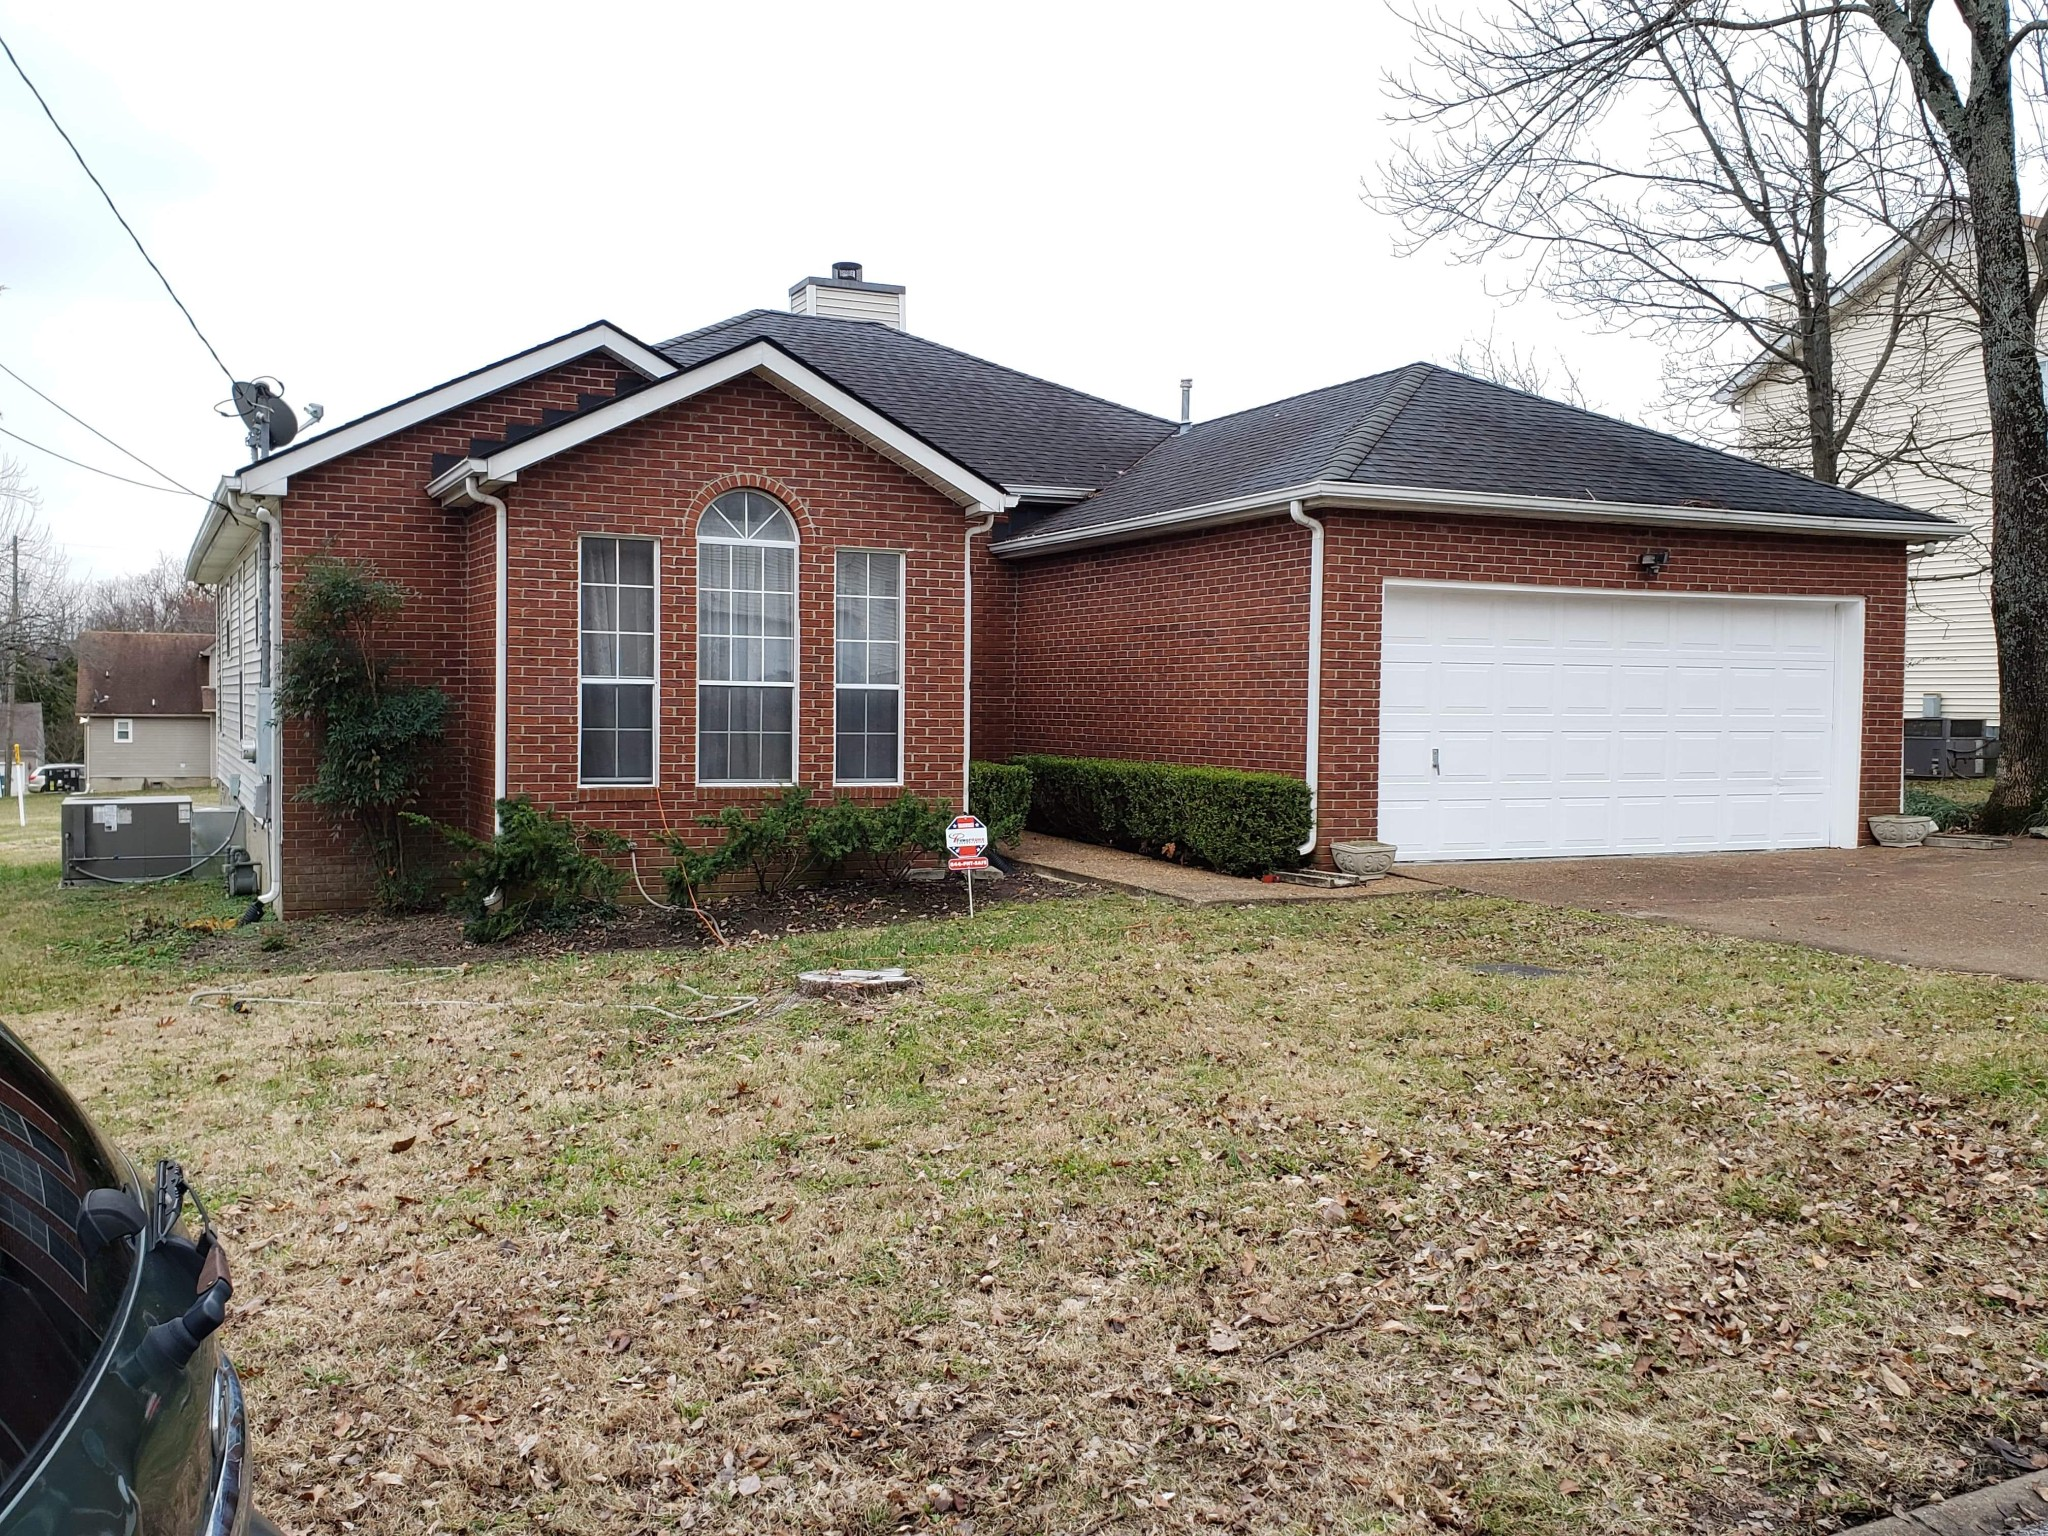 3025 Brantley Dr, Nashville-Antioch in Davidson County County, TN 37013 Home for Sale